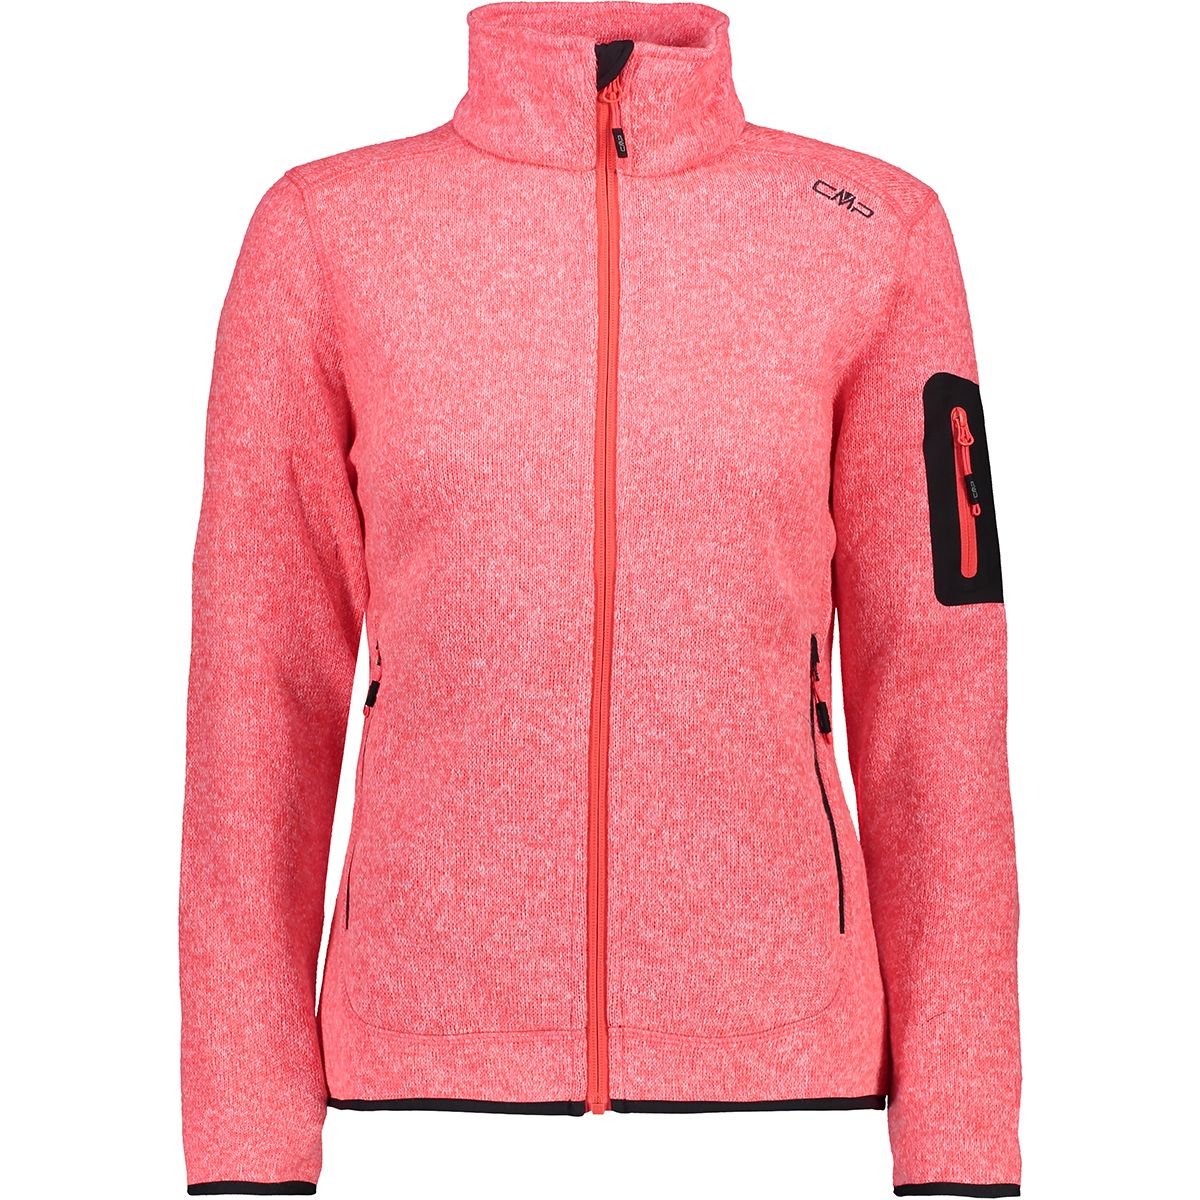 CMP Damen Strick Fleece Jacke (Größe XL, Rot) | Fleecejacken > Damen